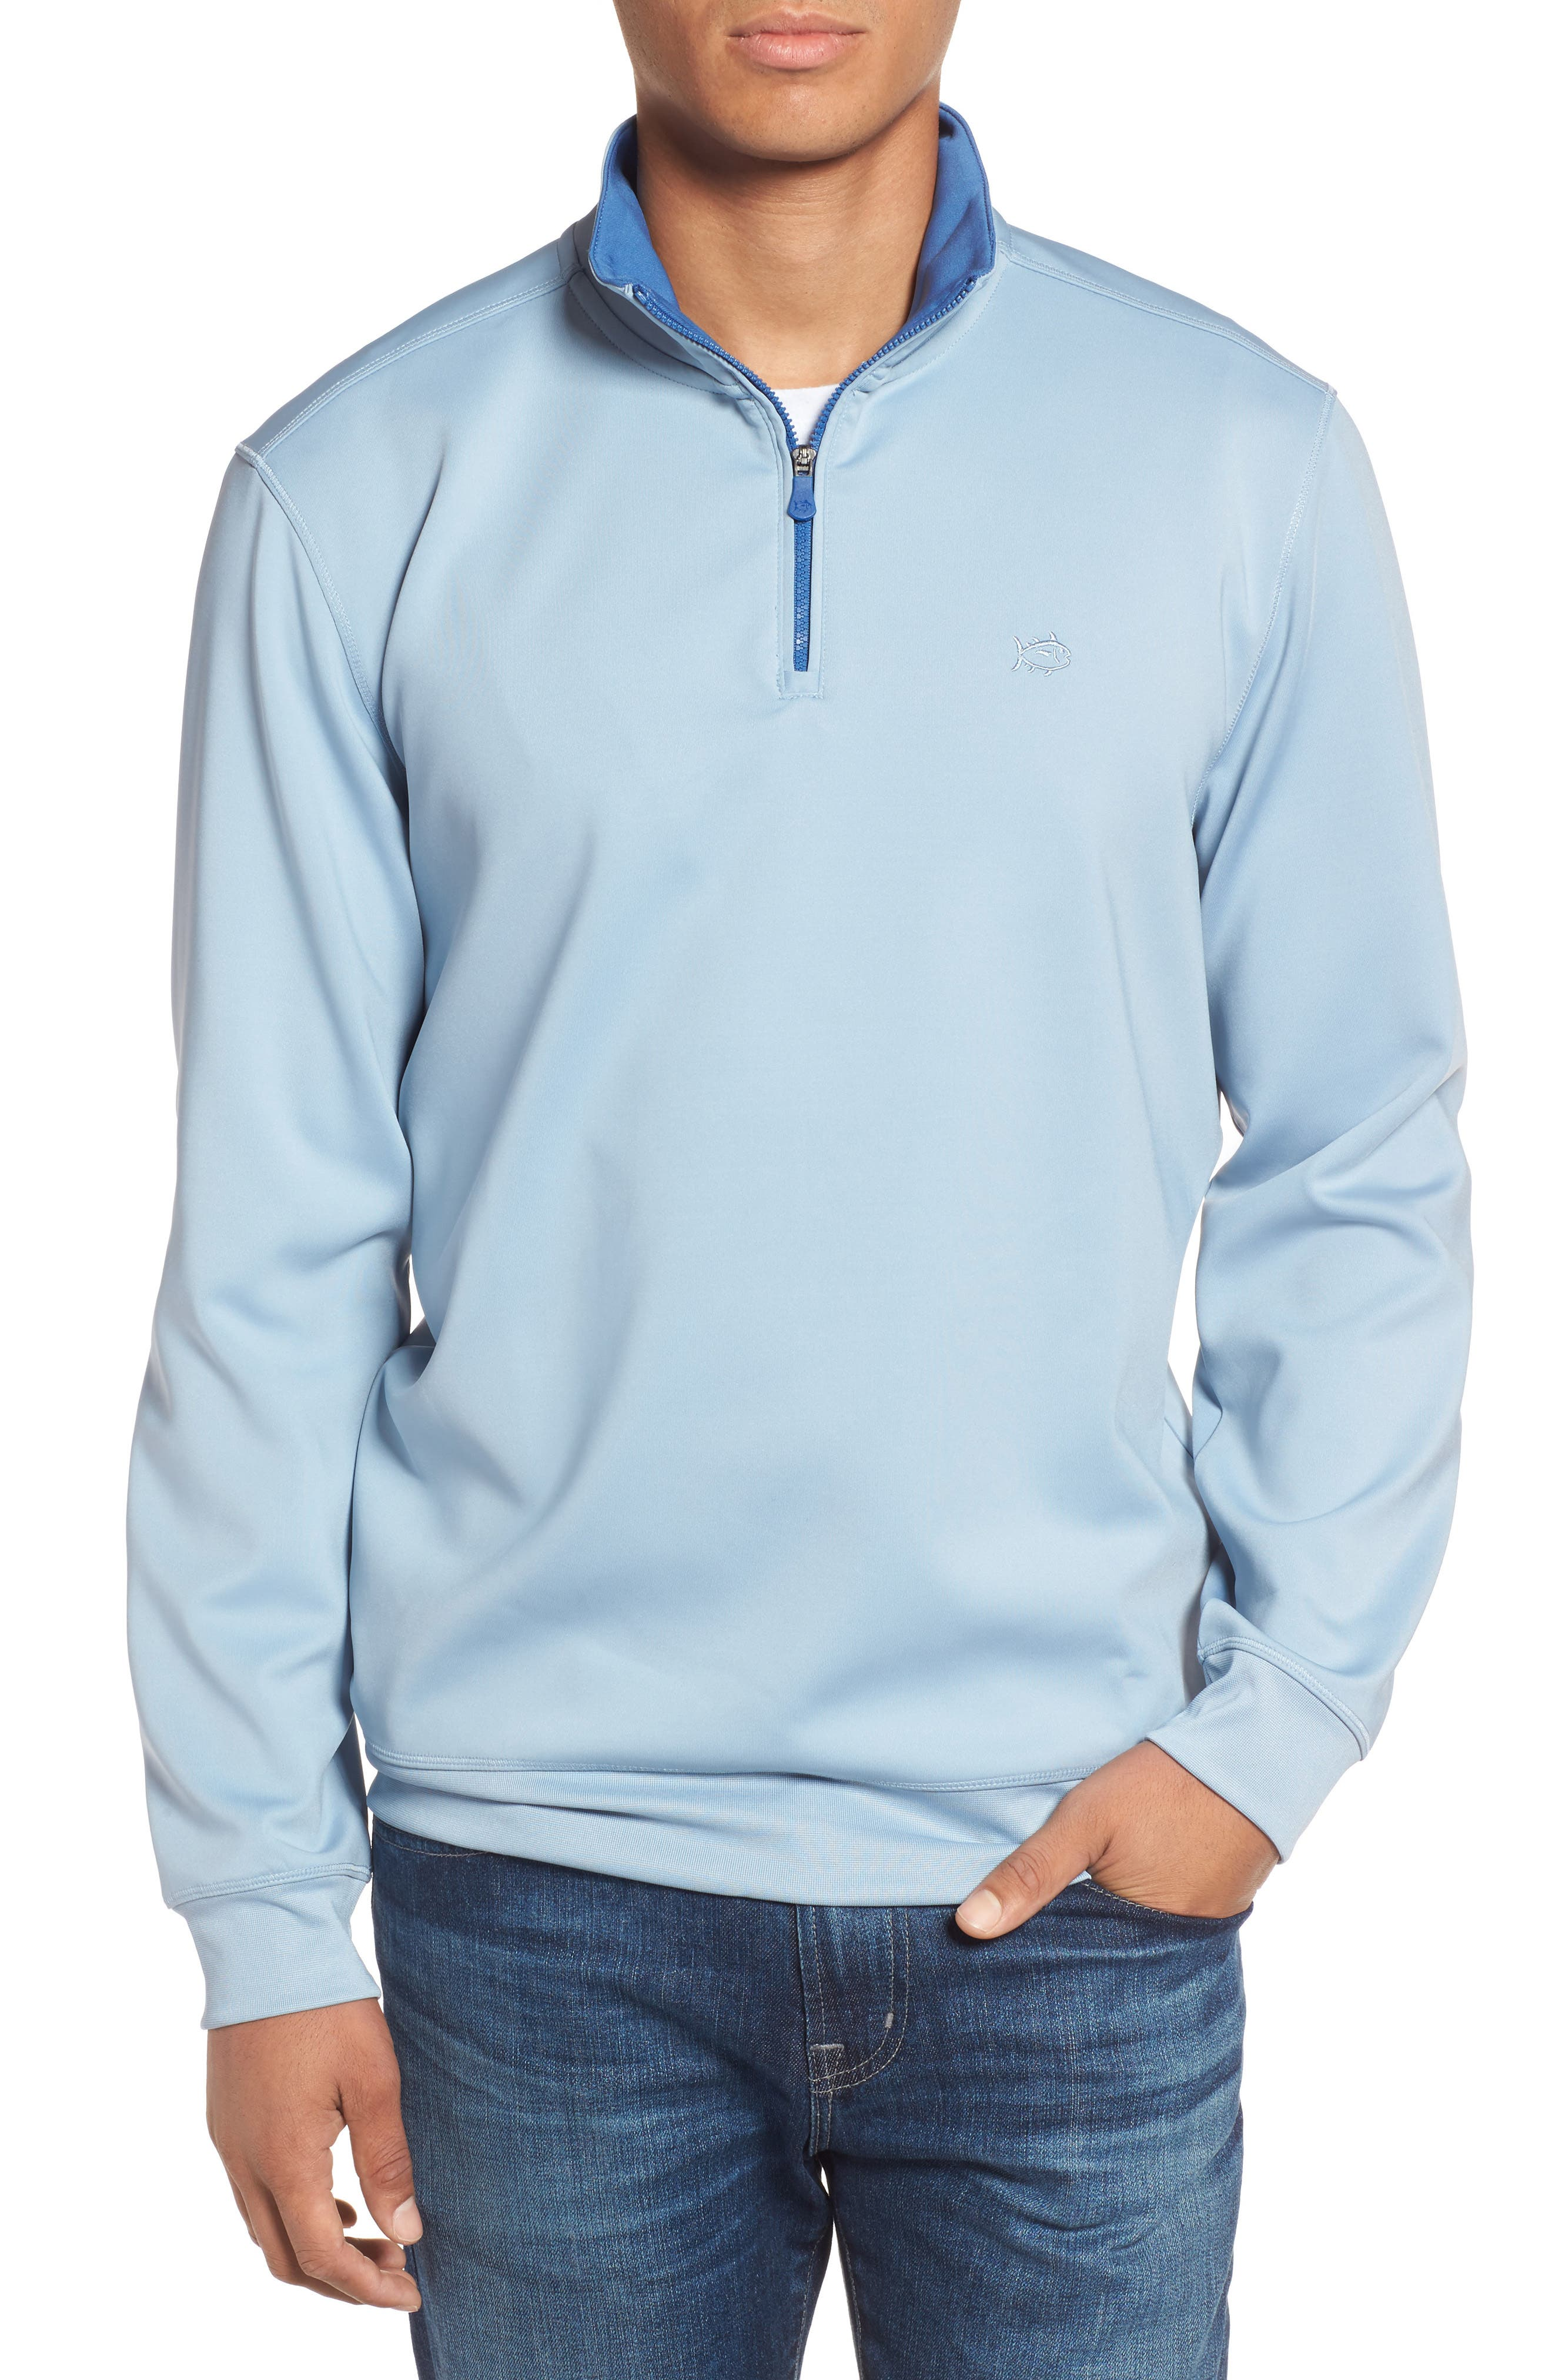 Main Image - Southern Tide 19th Hole Quarter Zip Pullover